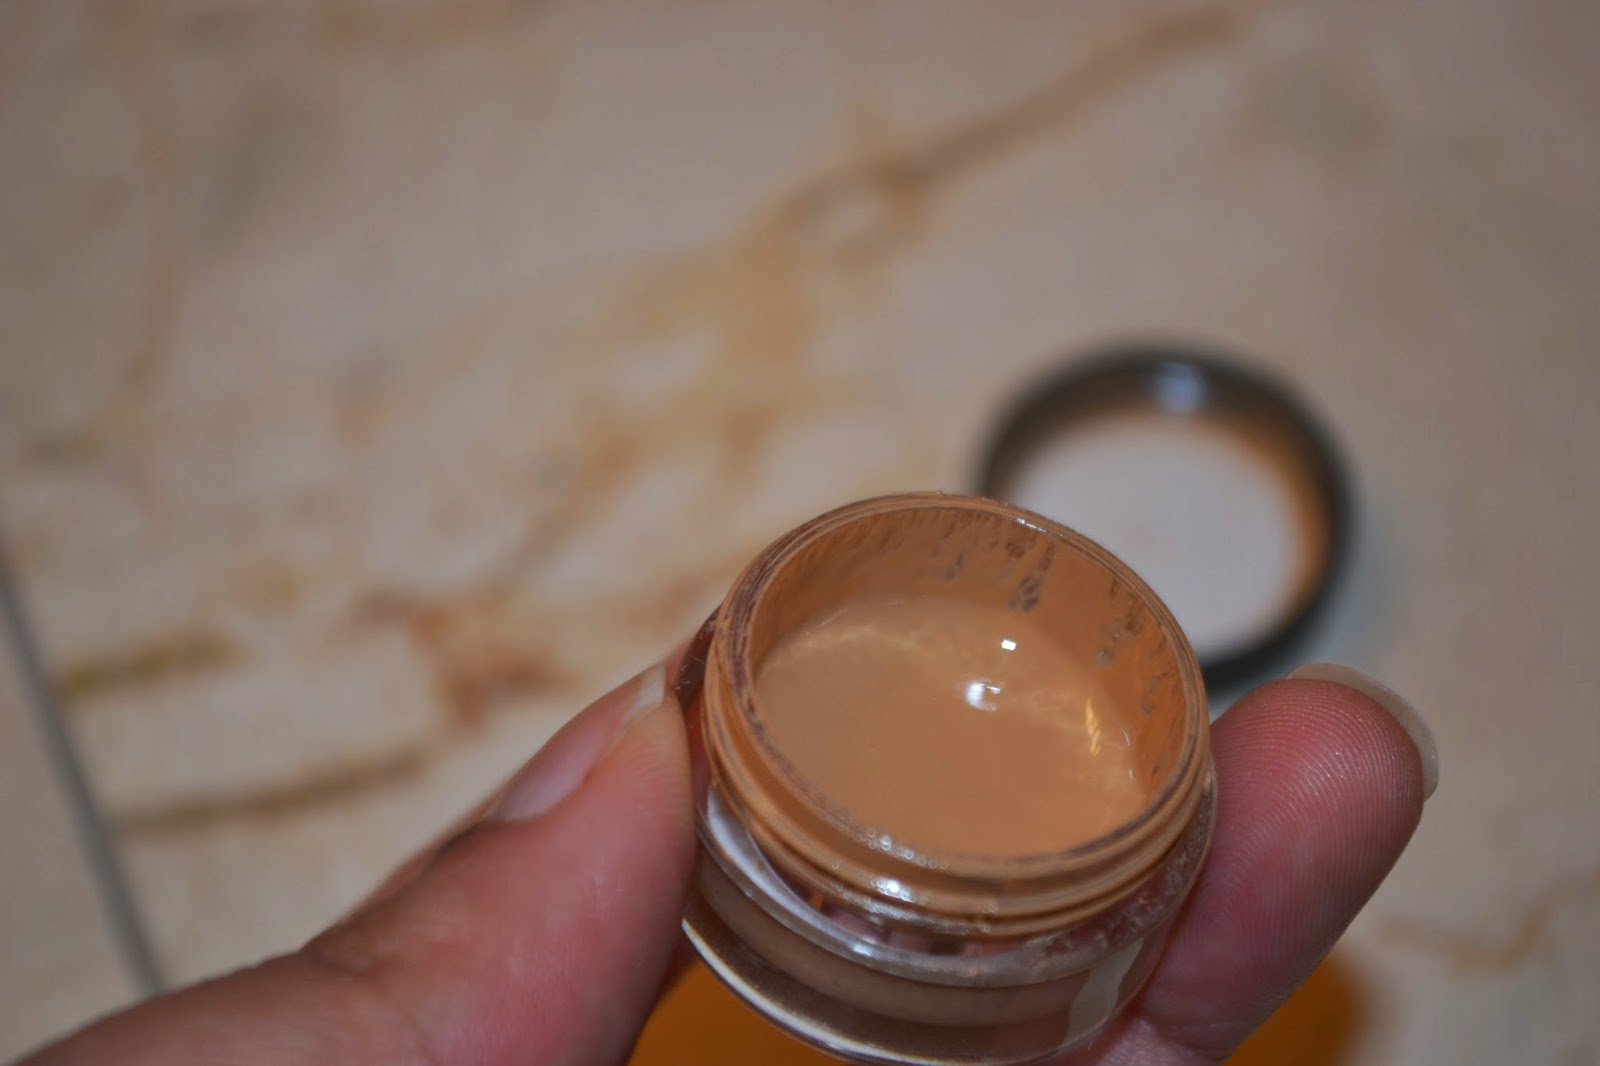 MAC's Studio Face and Body Foundation in C5